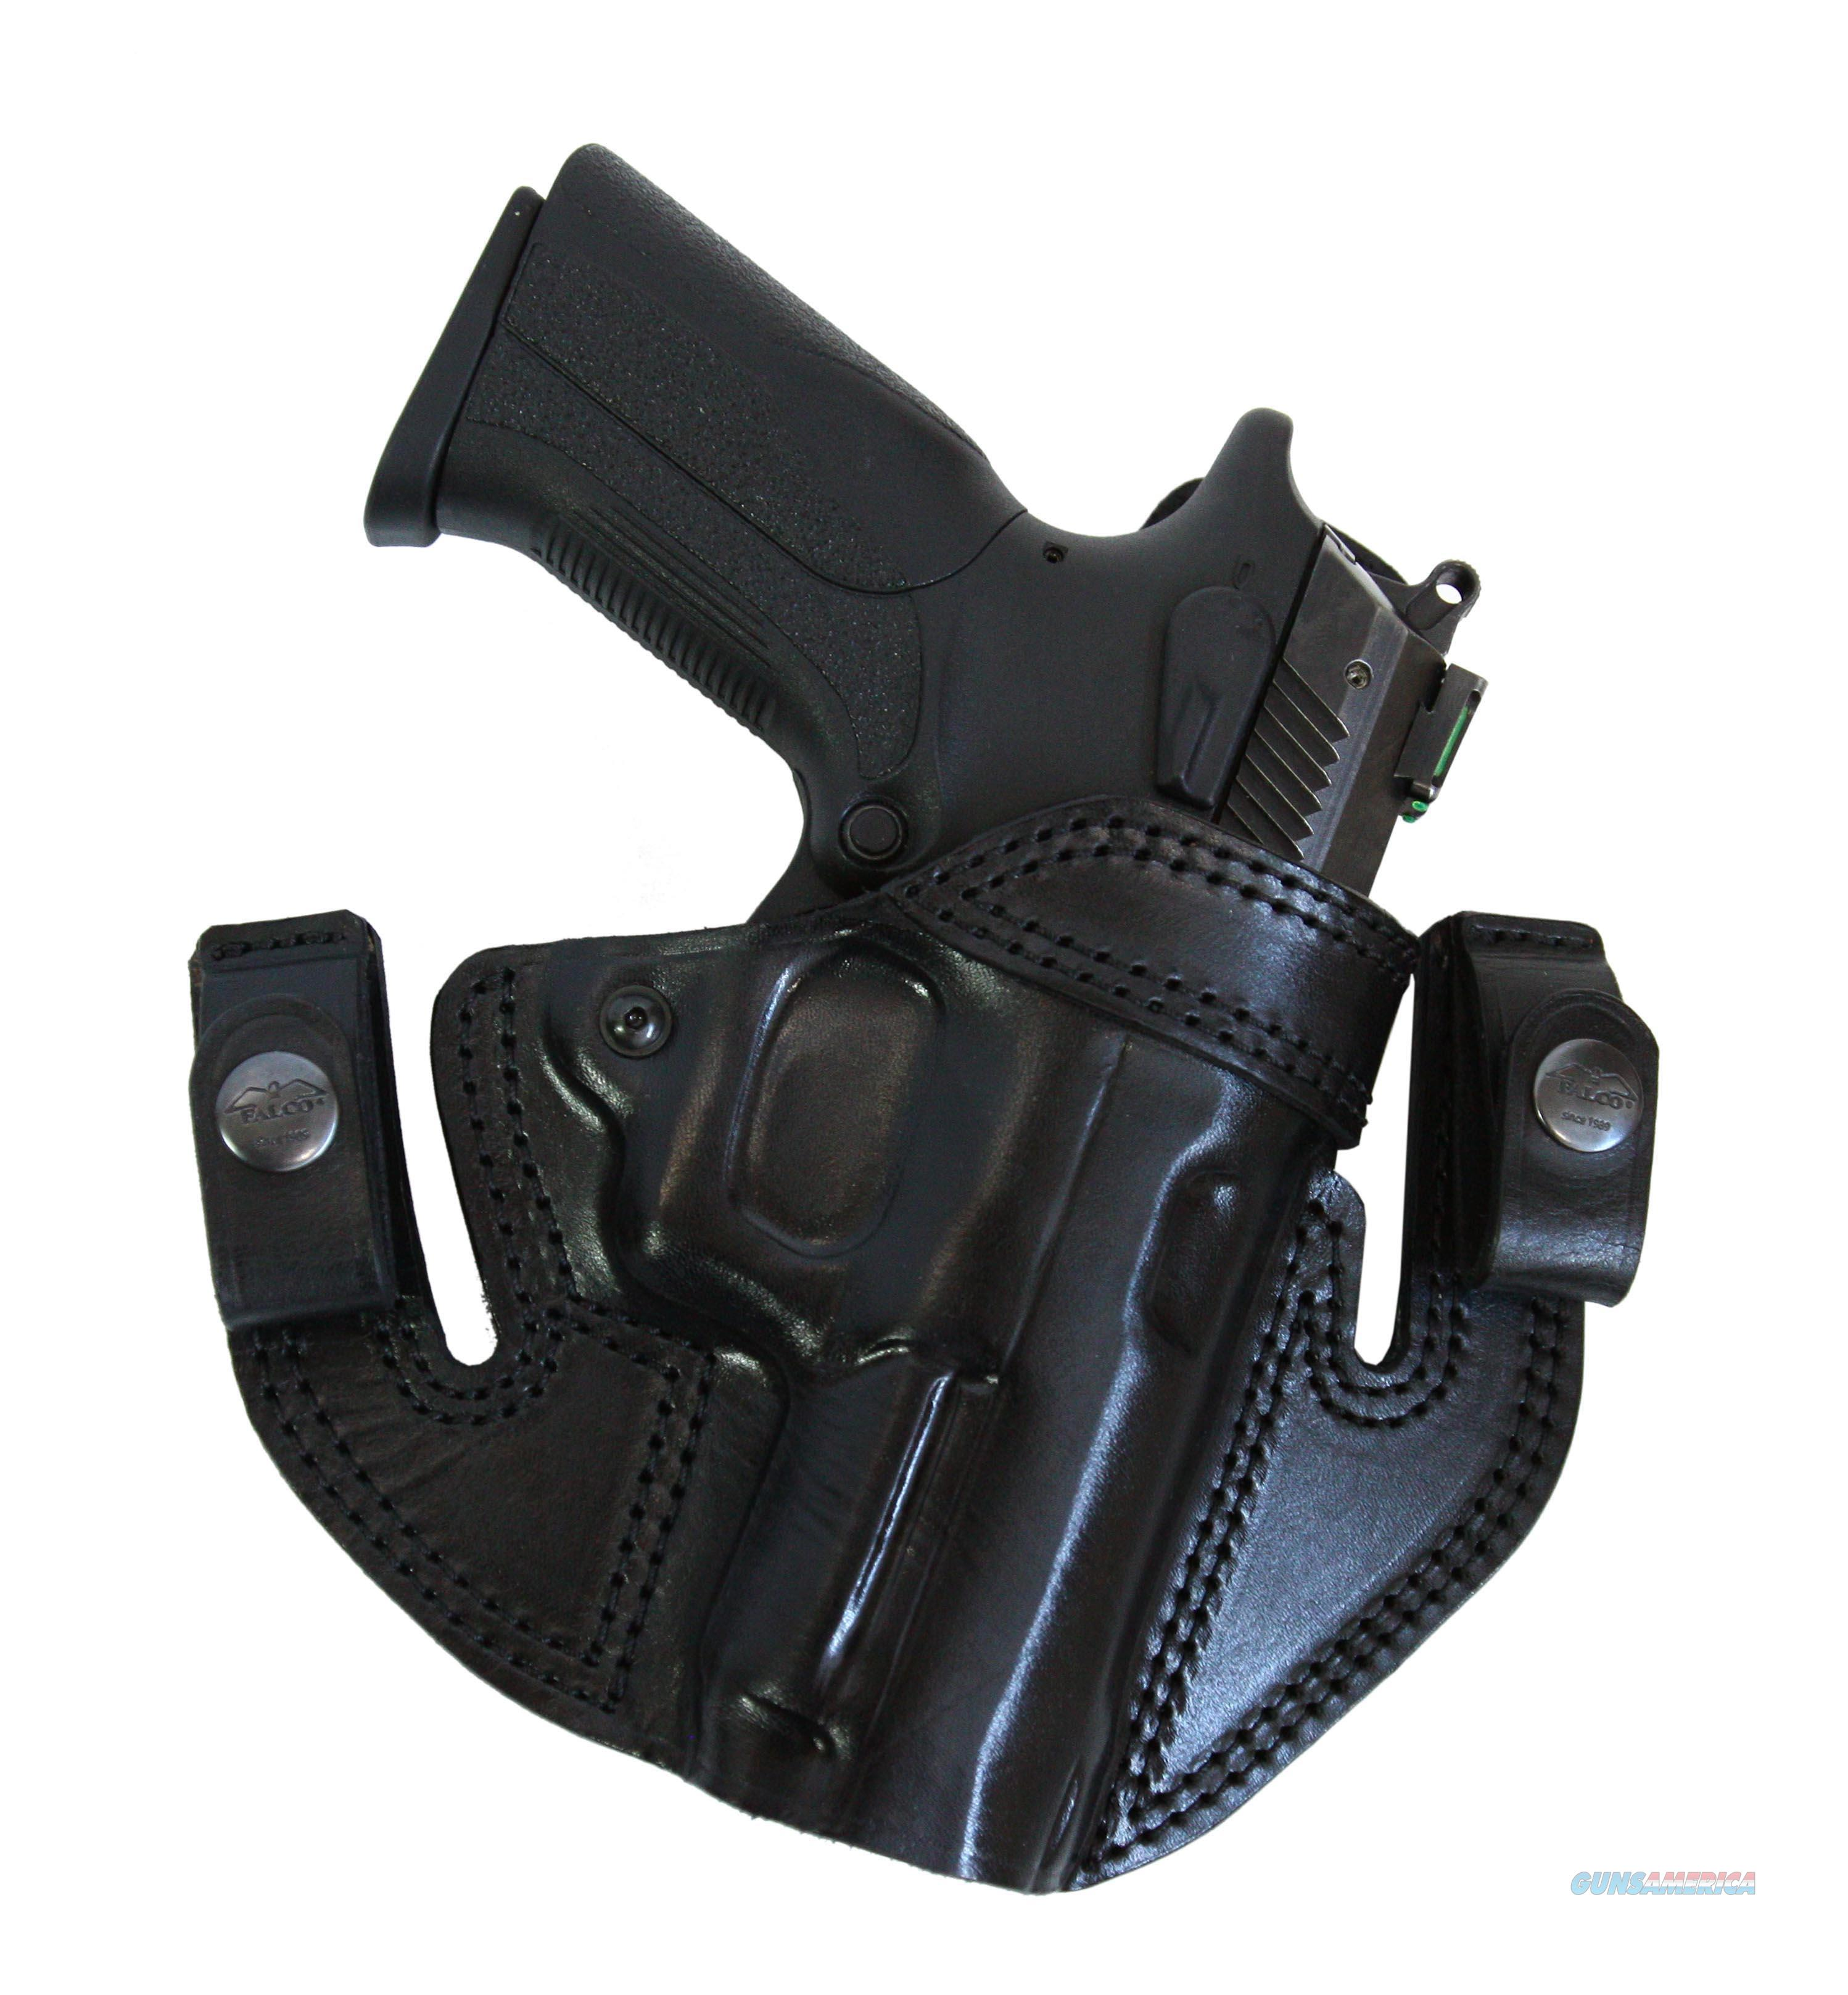 IWB / OWB Leather Gun Holster  Heckler & Koch P30L  Non-Guns > Holsters and Gunleather > Concealed Carry